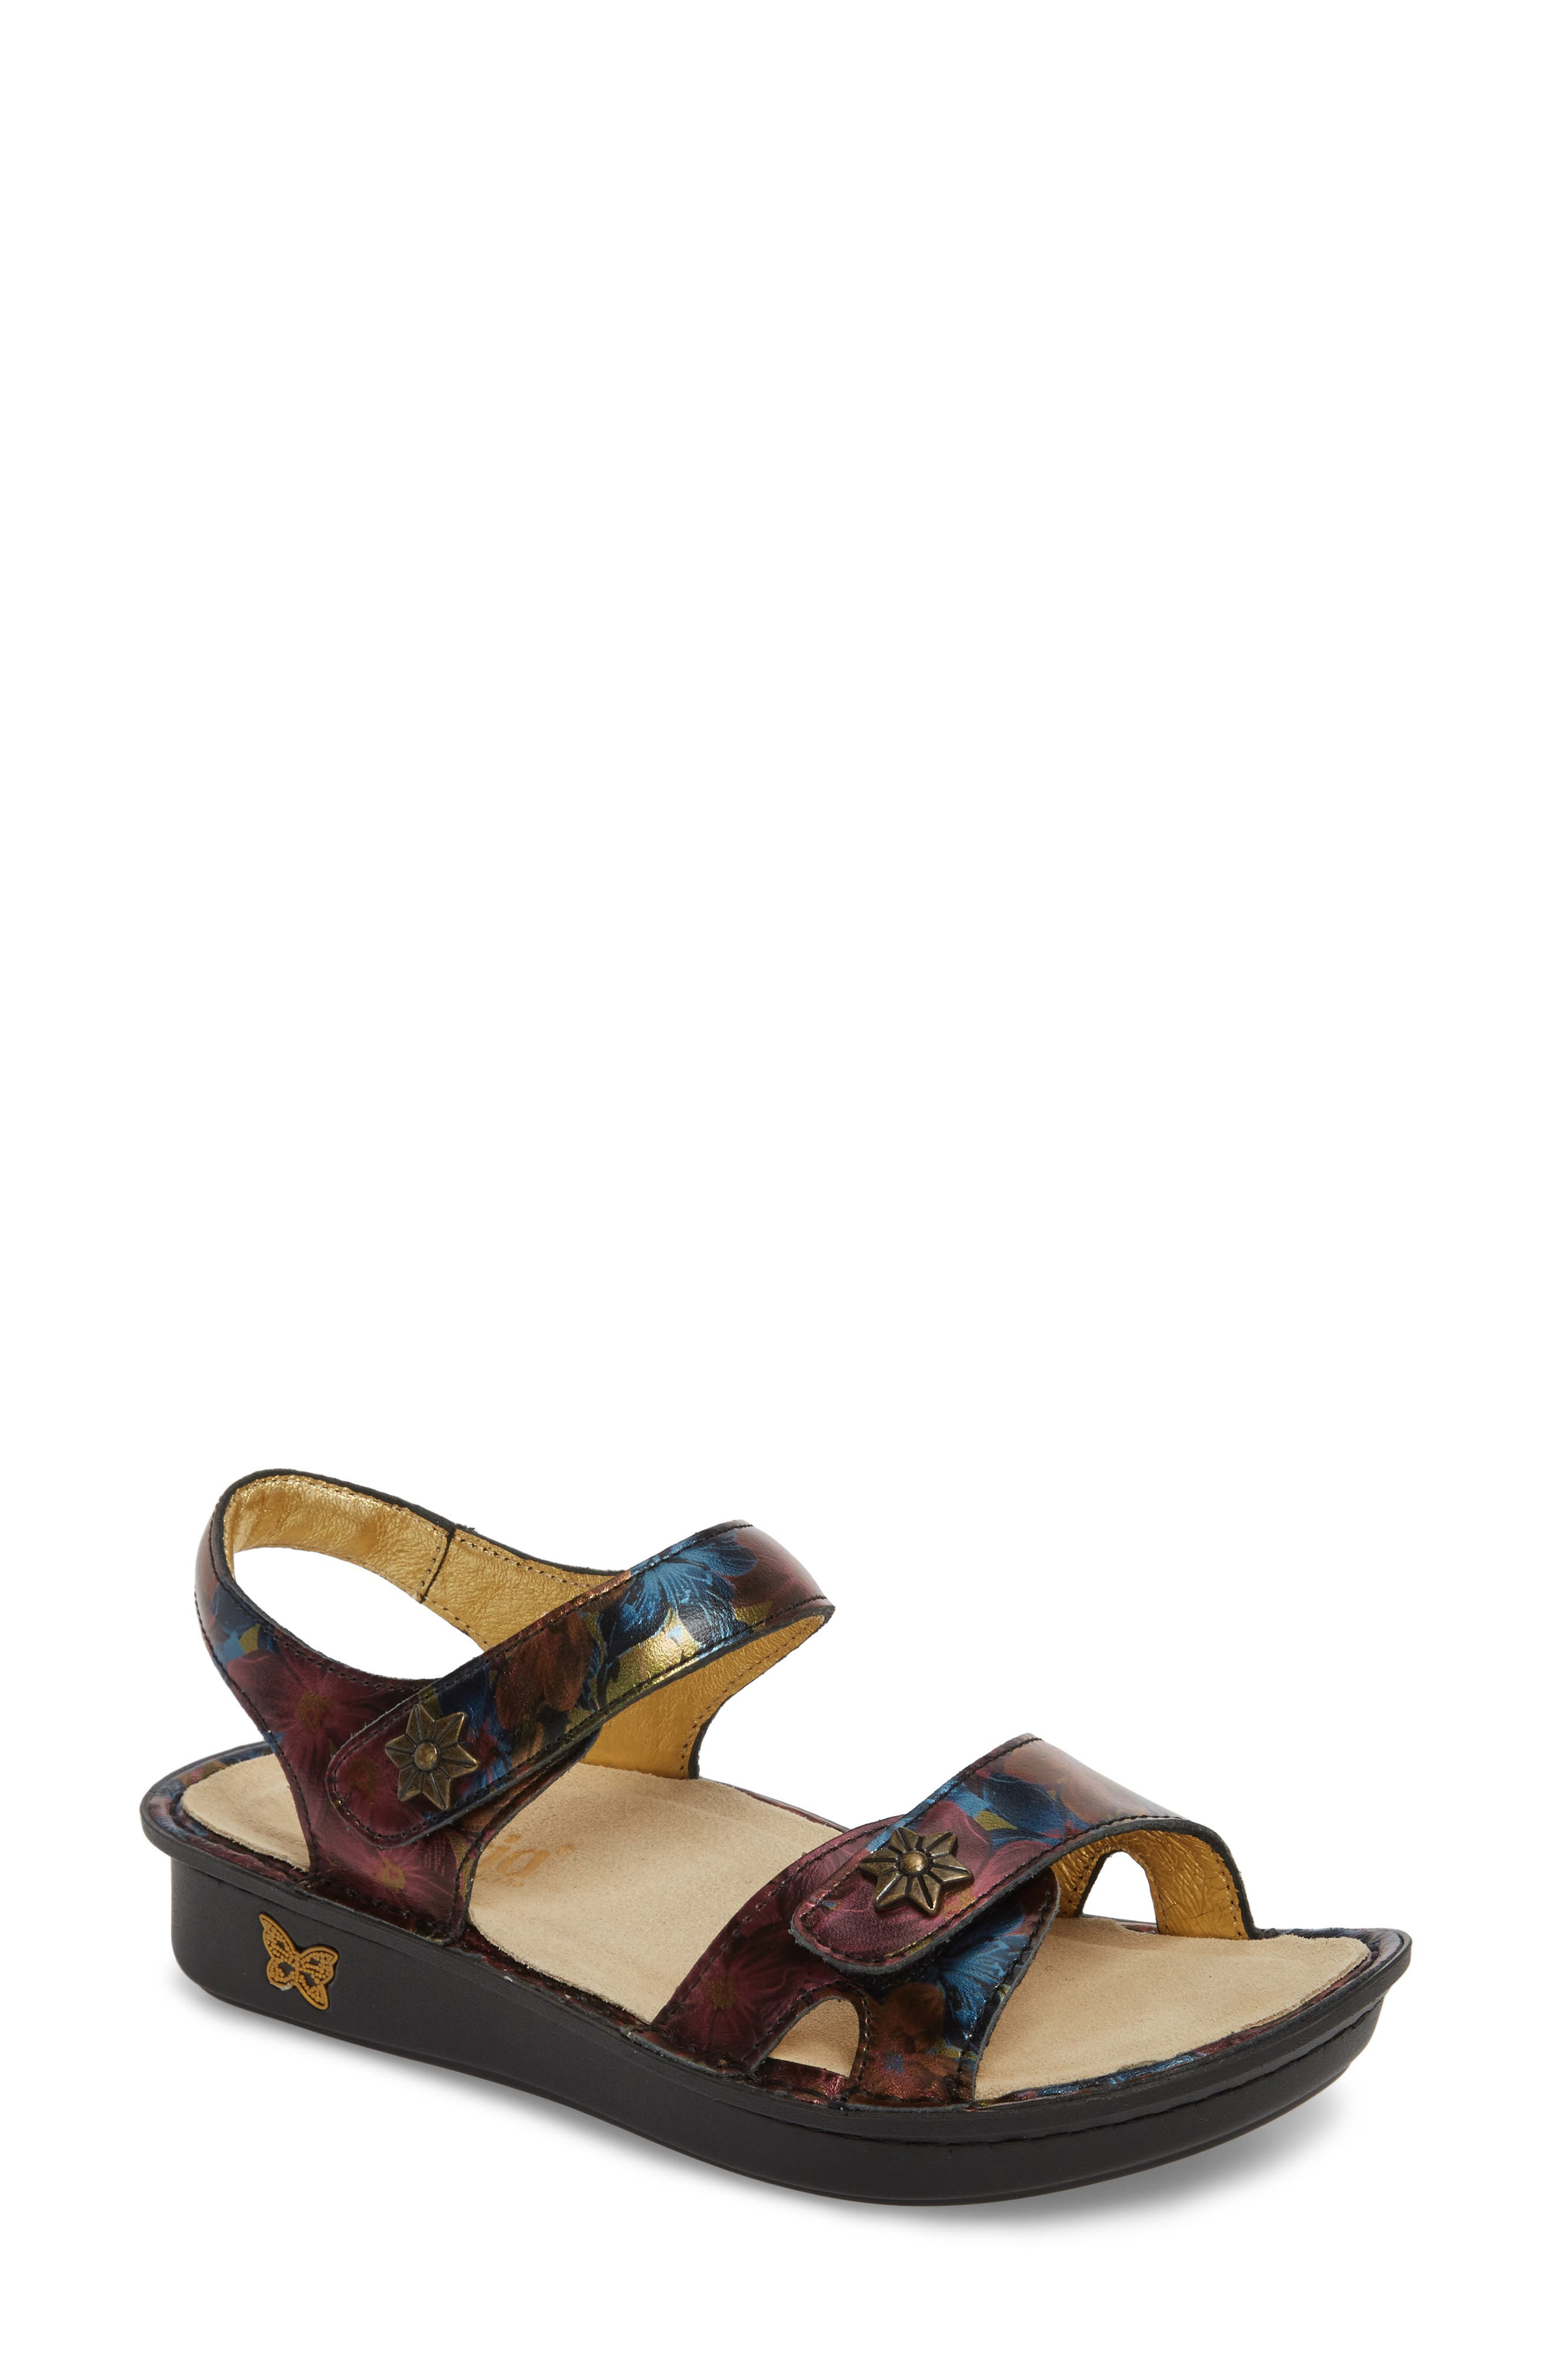 Vienna Sandal,                             Main thumbnail 1, color,                             Special Lady Leather